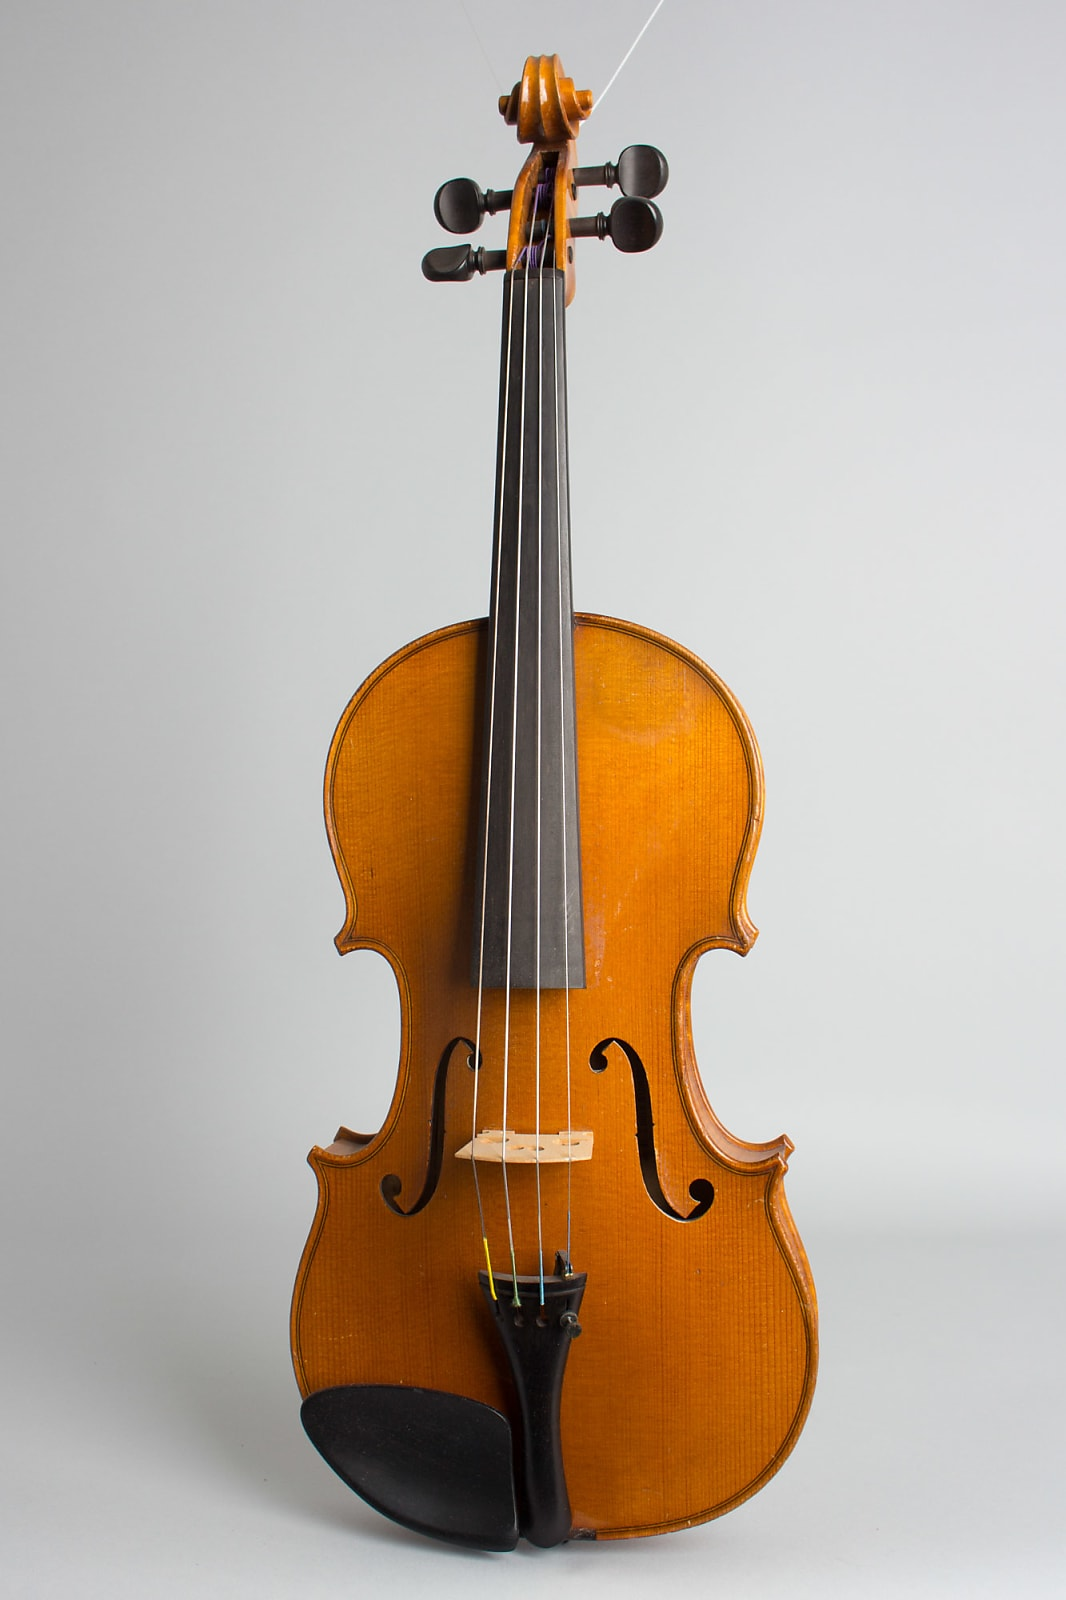 H. Emile Blondelet Violin 1928 Light Amber Varnish